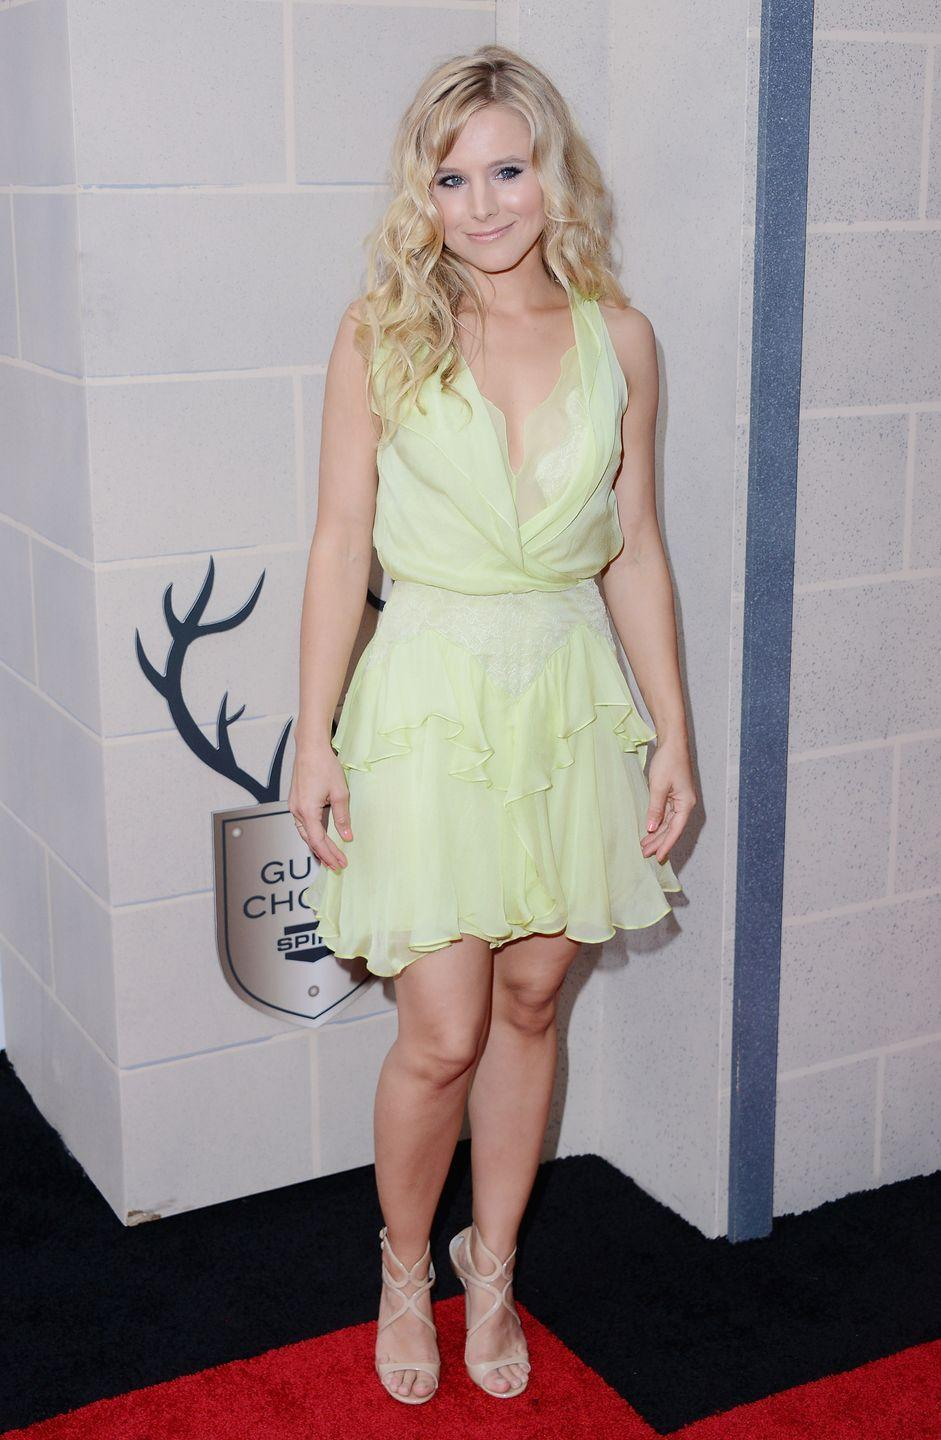 <p>While Kristen Bell is known for being the voice of Anna from<em> Frozen</em>, we think she looks just like our favorite Disney fairy in this light green dress she wore in 2012.</p>